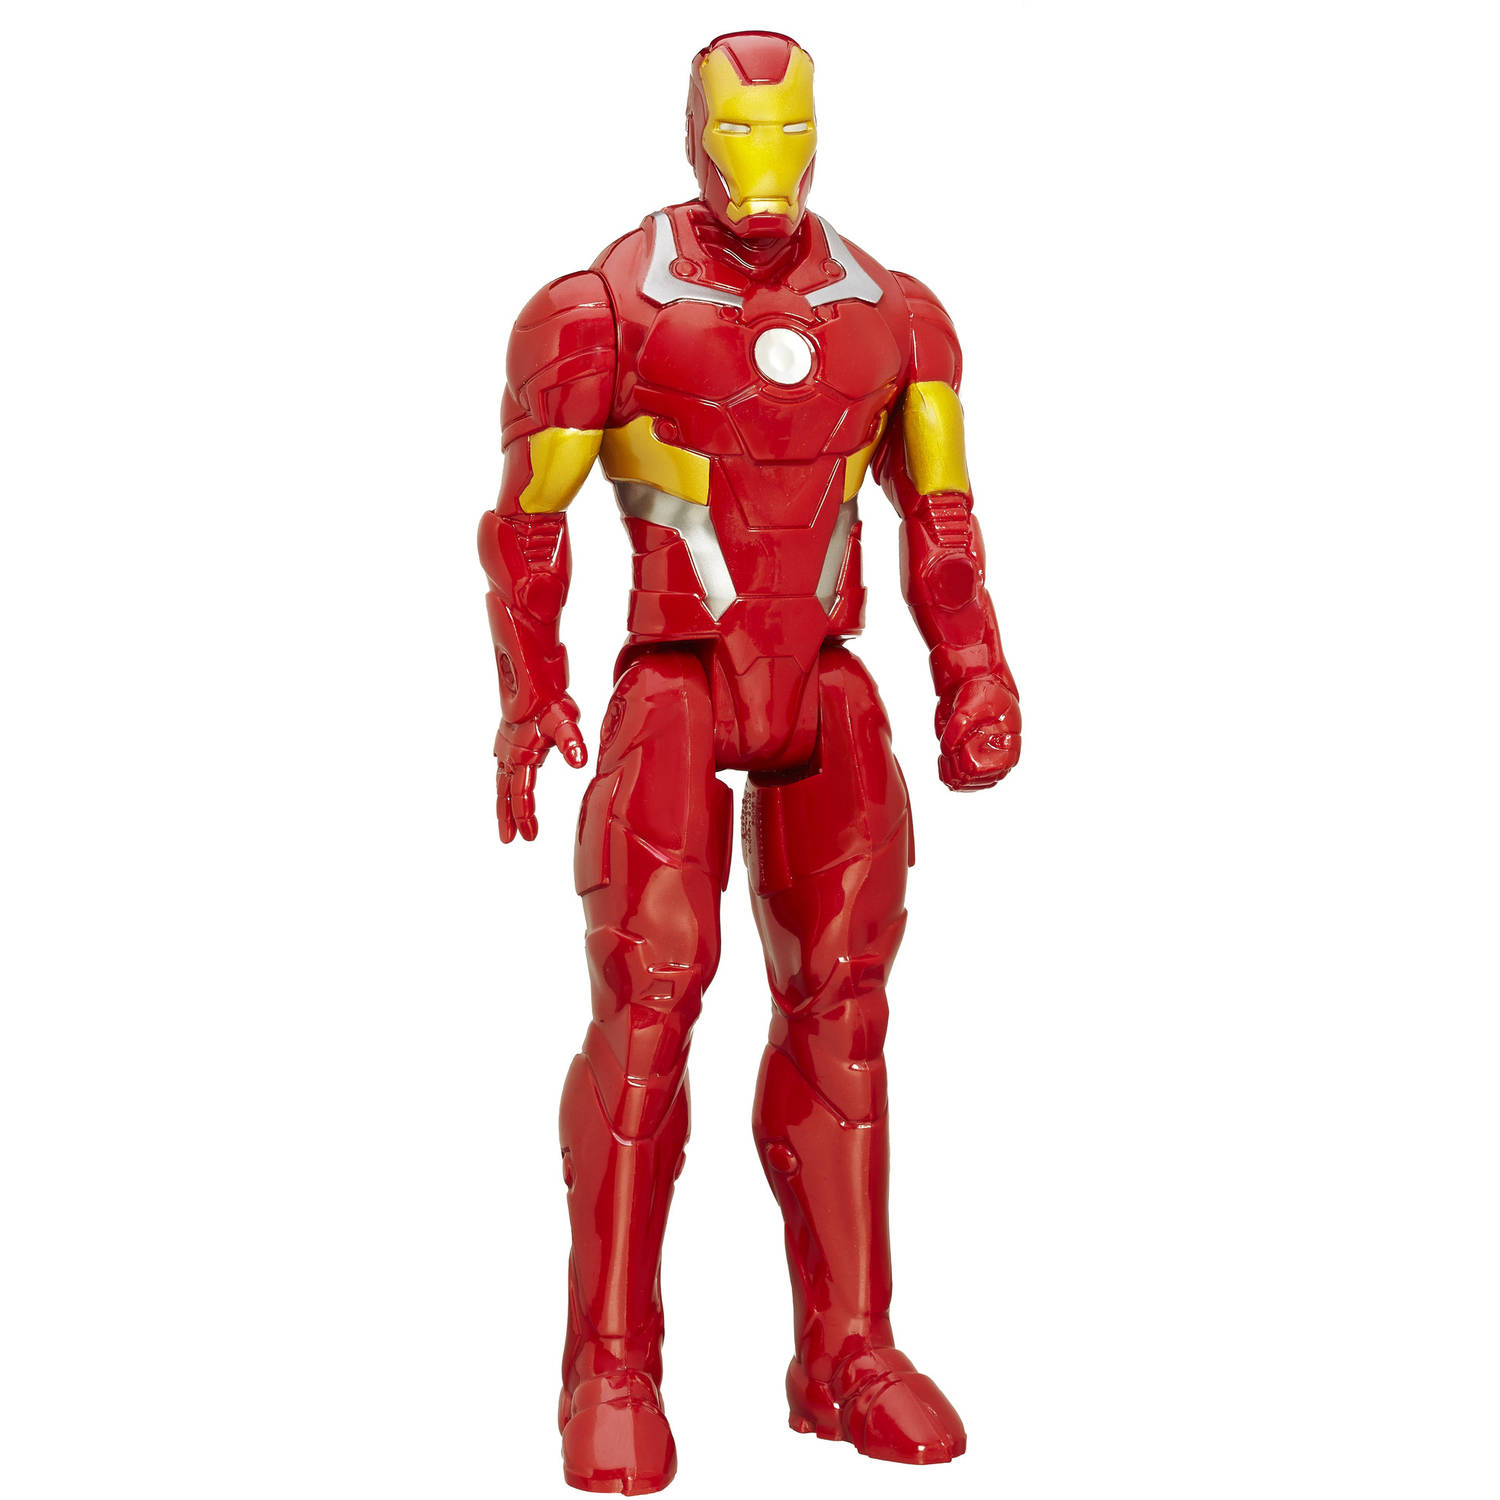 Marvel Titan Hero Series Iron Man